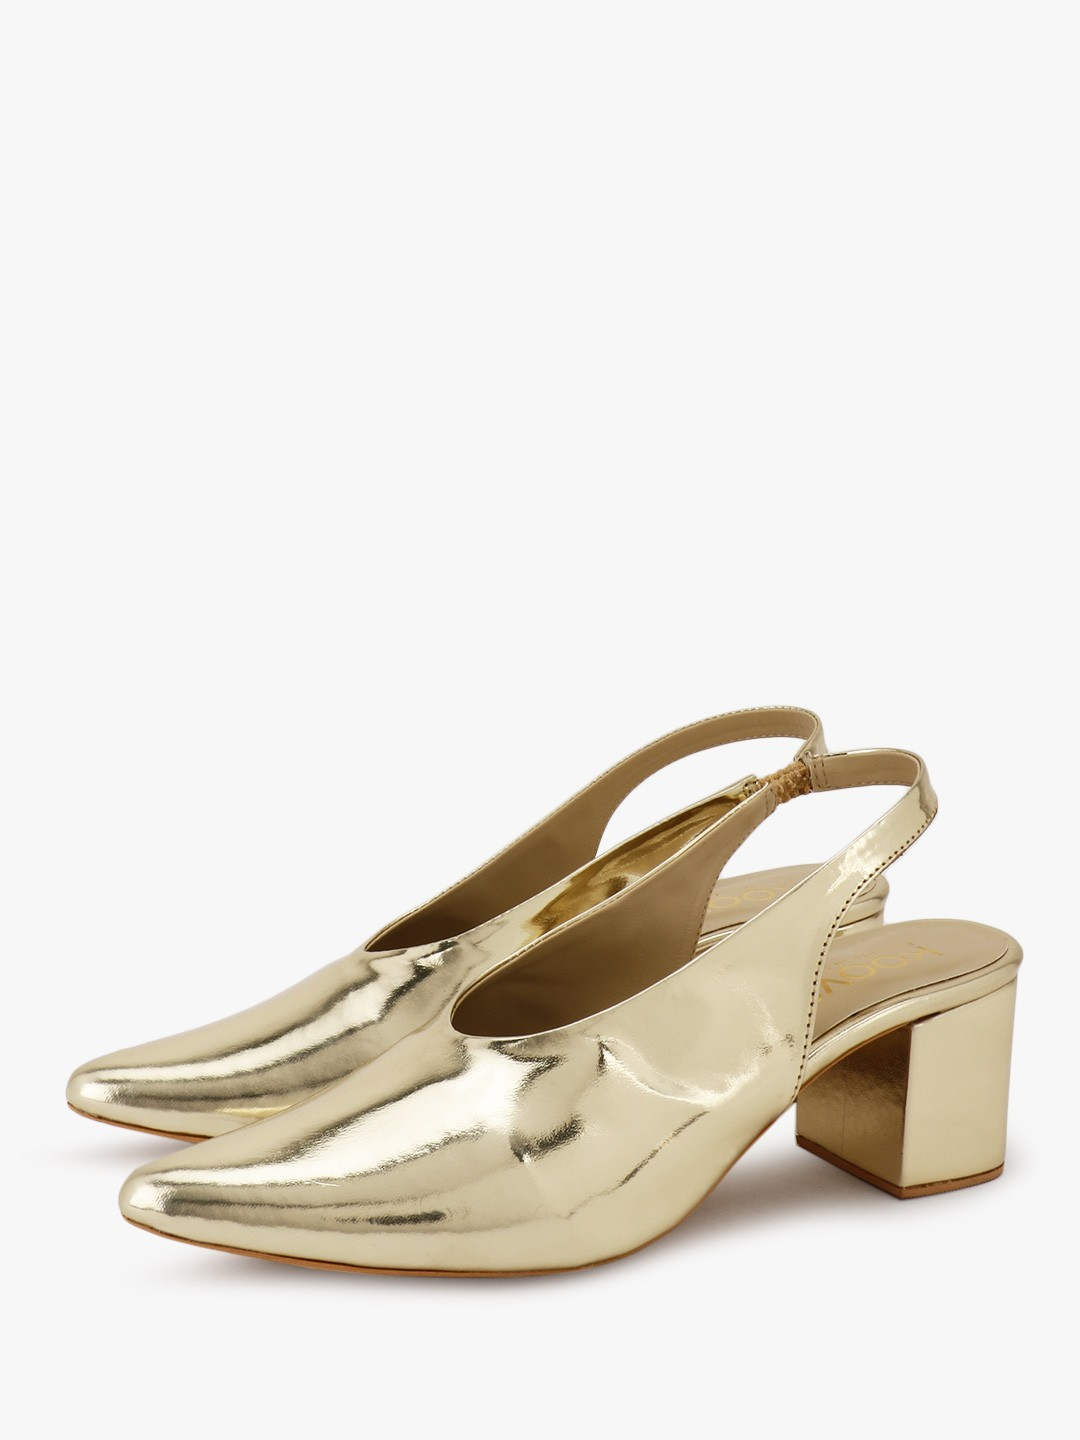 KOOVS Gold V-Cut Sling Back Pumps 1